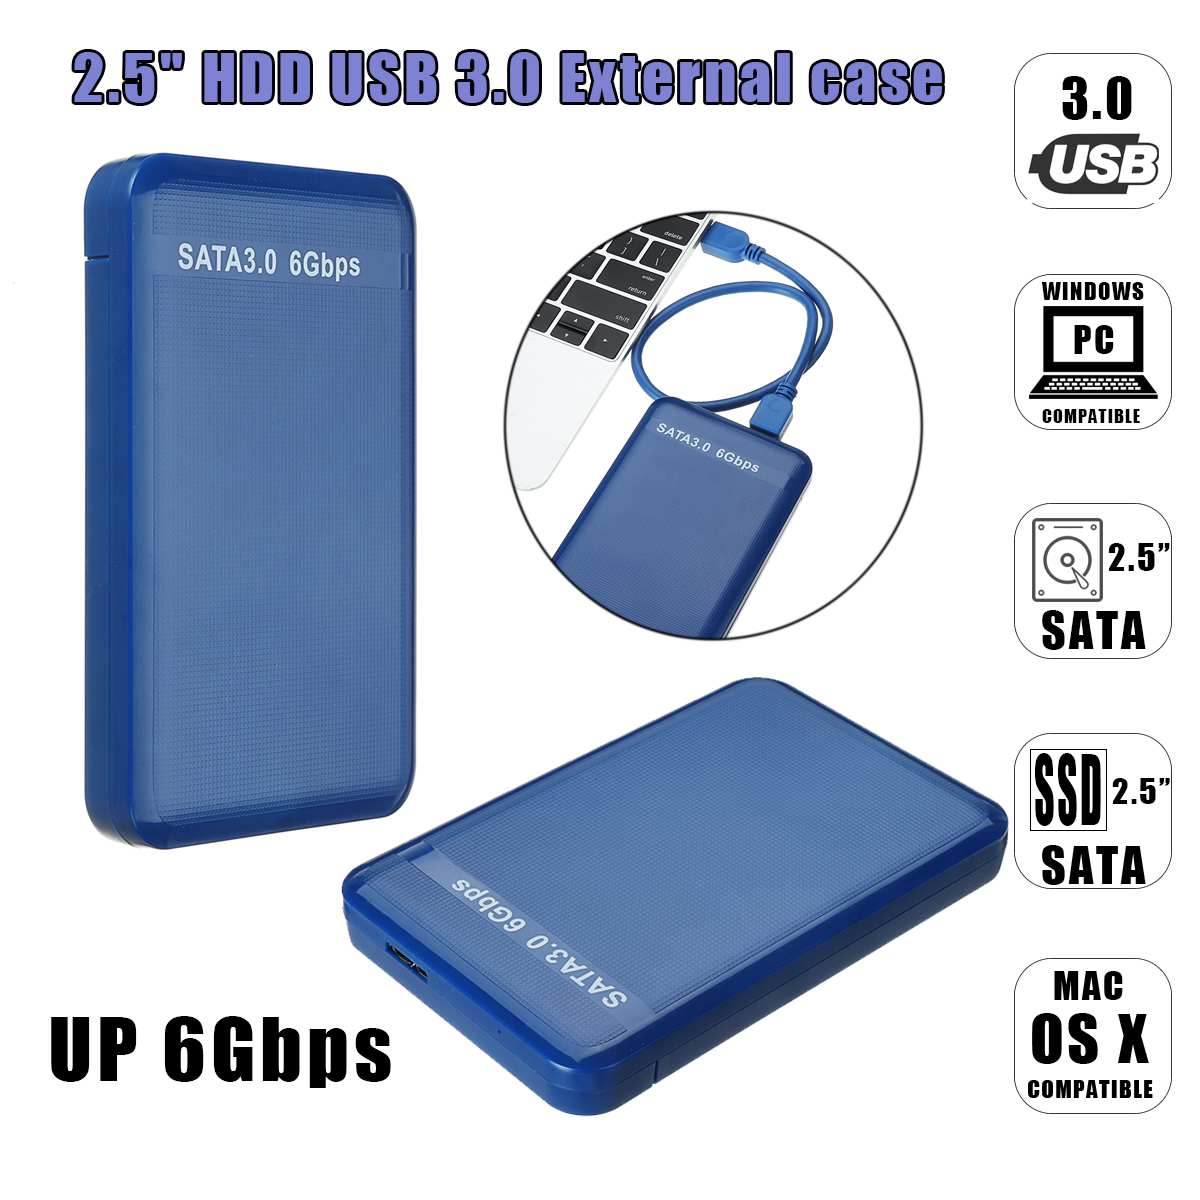 HDD Enclosure 6Gbps USB 3.0 2.5 Inch SATA External Hard Dish Drive Case Cover Cable Up 6Gbps